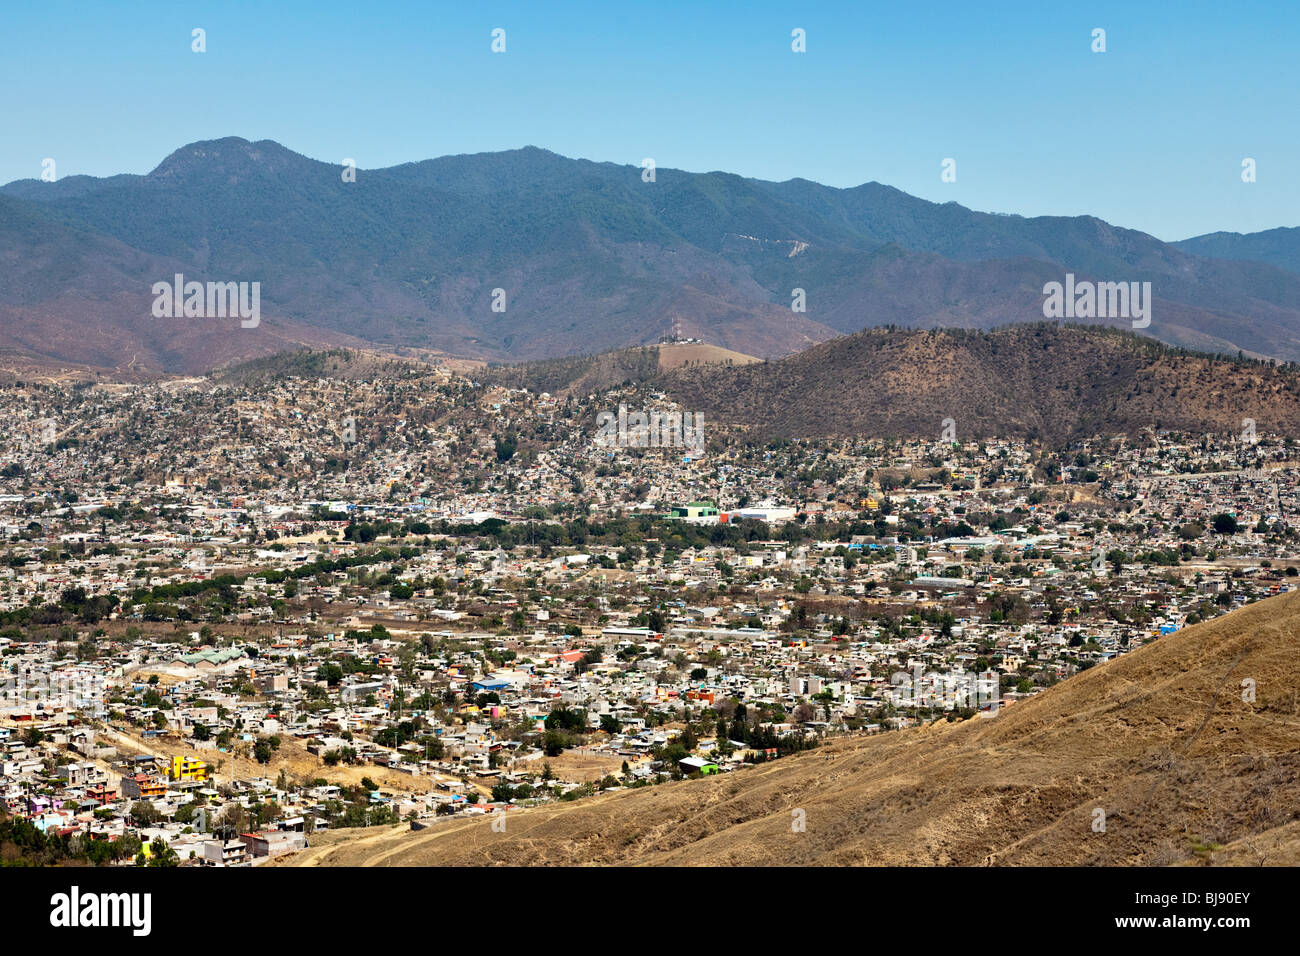 view over Oaxaca City outskirts to magnificent mountains & clear blue sky beyond on a beautiful day Oaxaca State - Stock Image